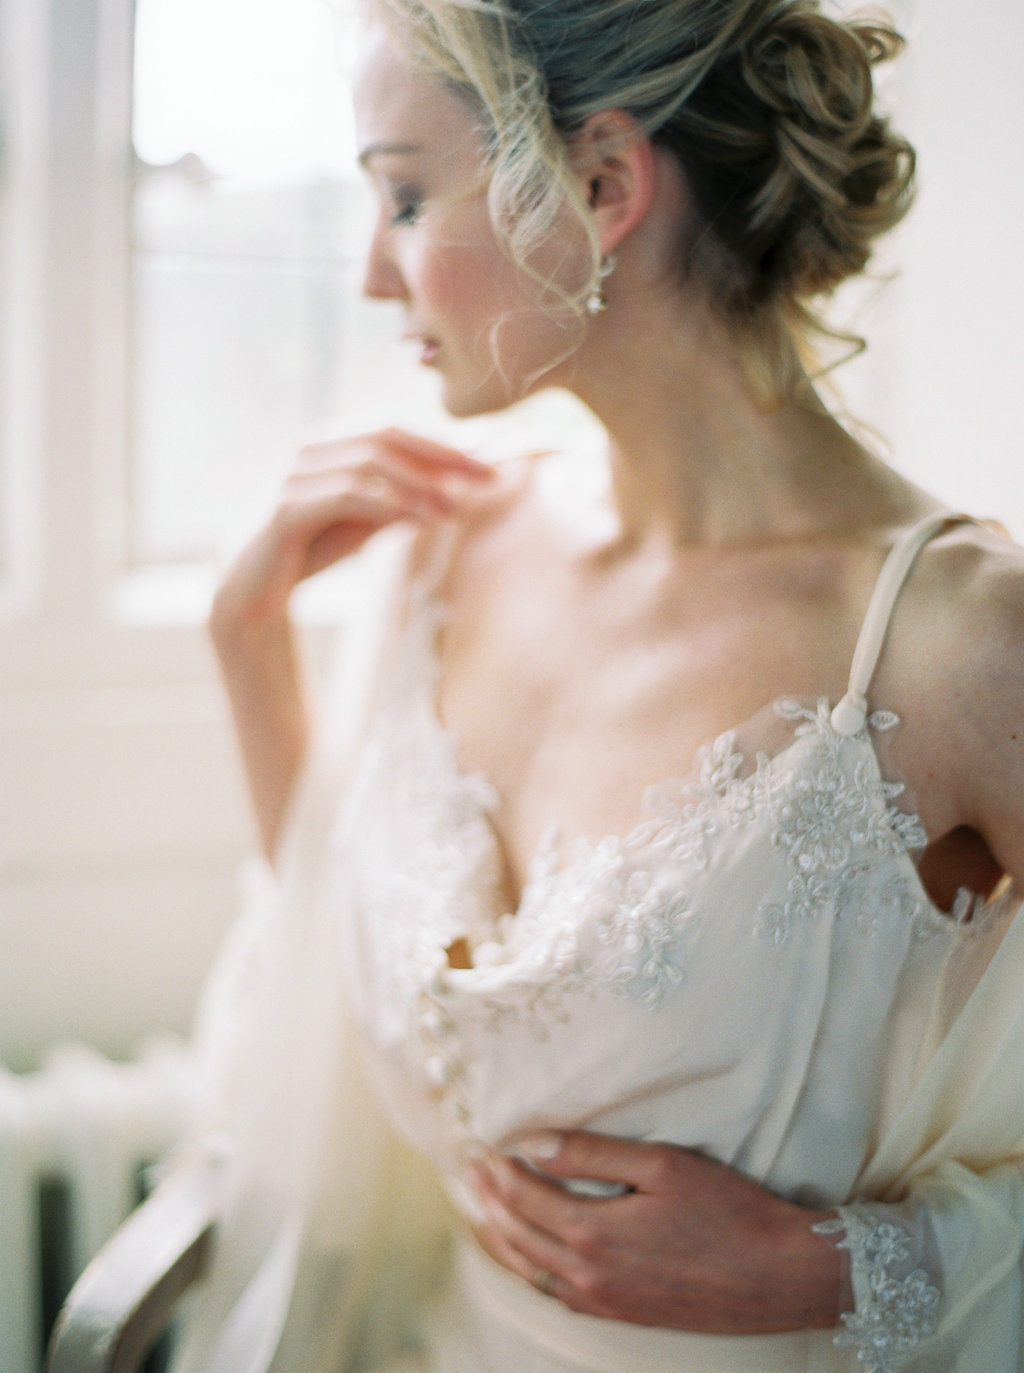 Bridal makeup and hair plus accessories by victoria fergusson at Hotel Endsleigh (53).jpg